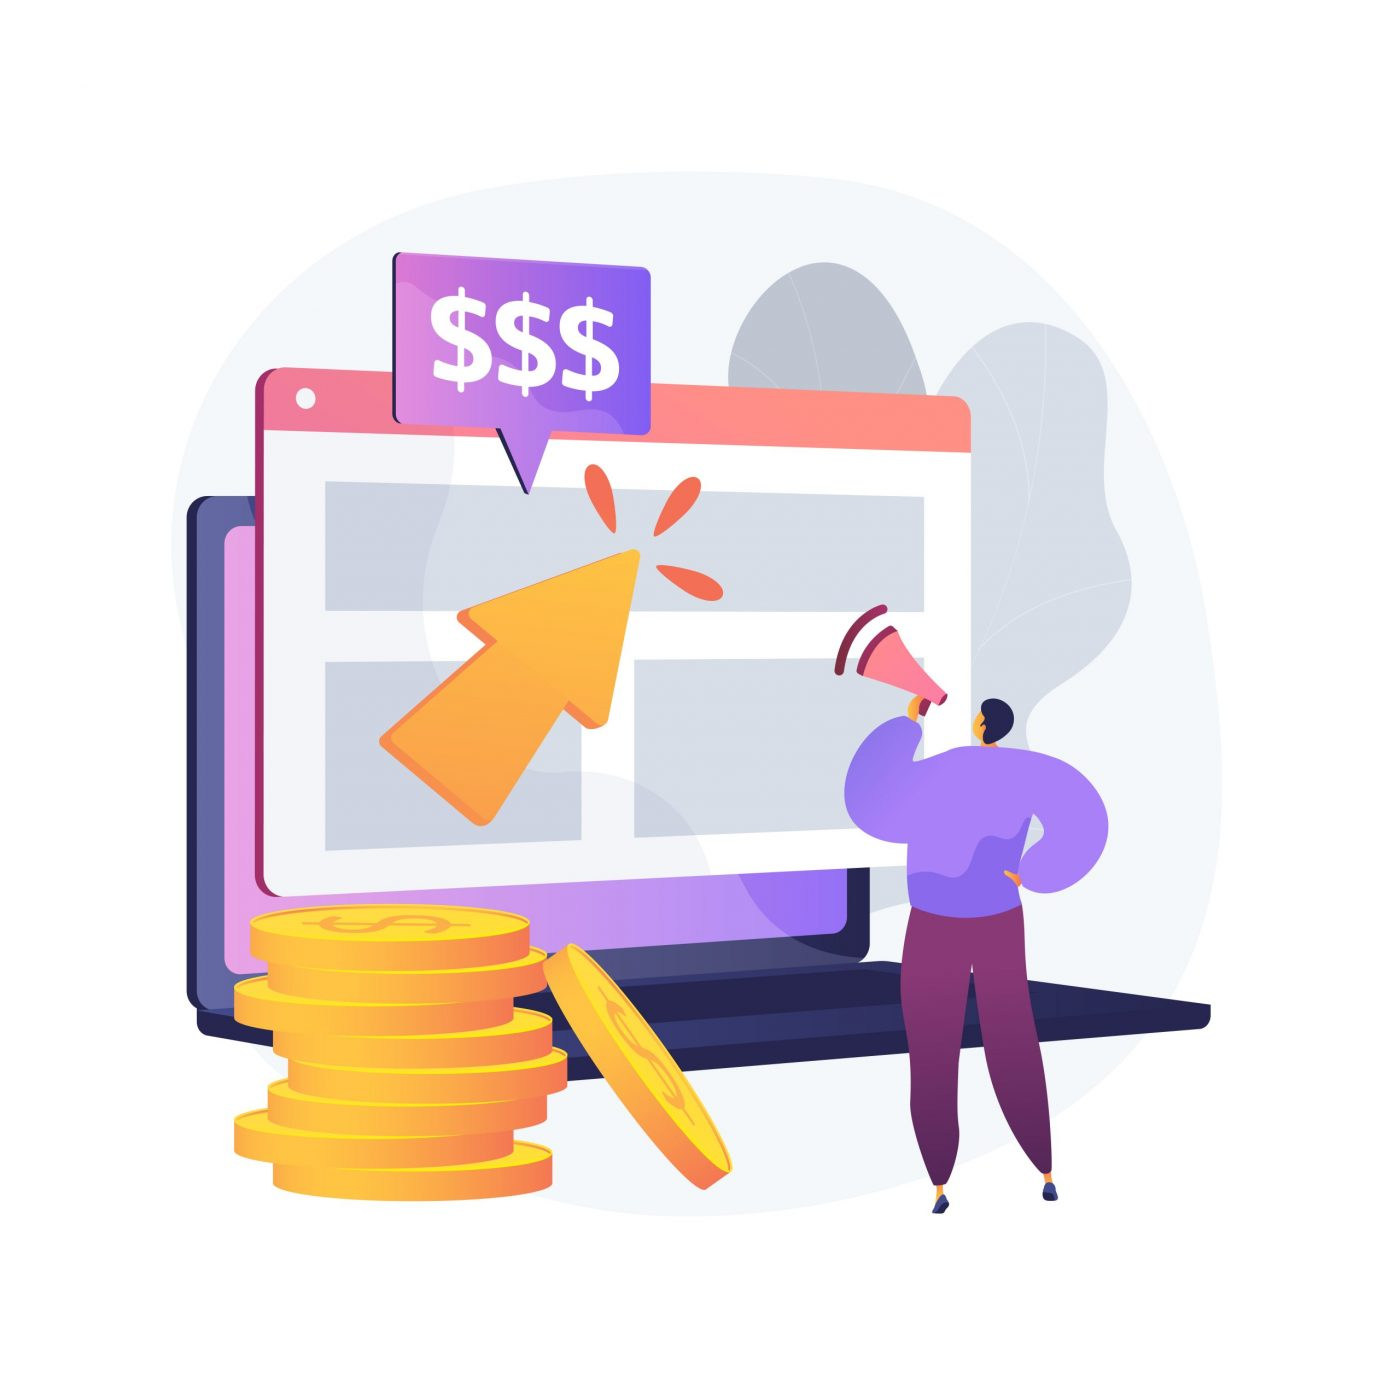 PPC Company in India, best ppc company in india, ppc services in india, ppc management services india, ppc agency in india, ppc agency india, google adwords expert in india, google ads expert in india,